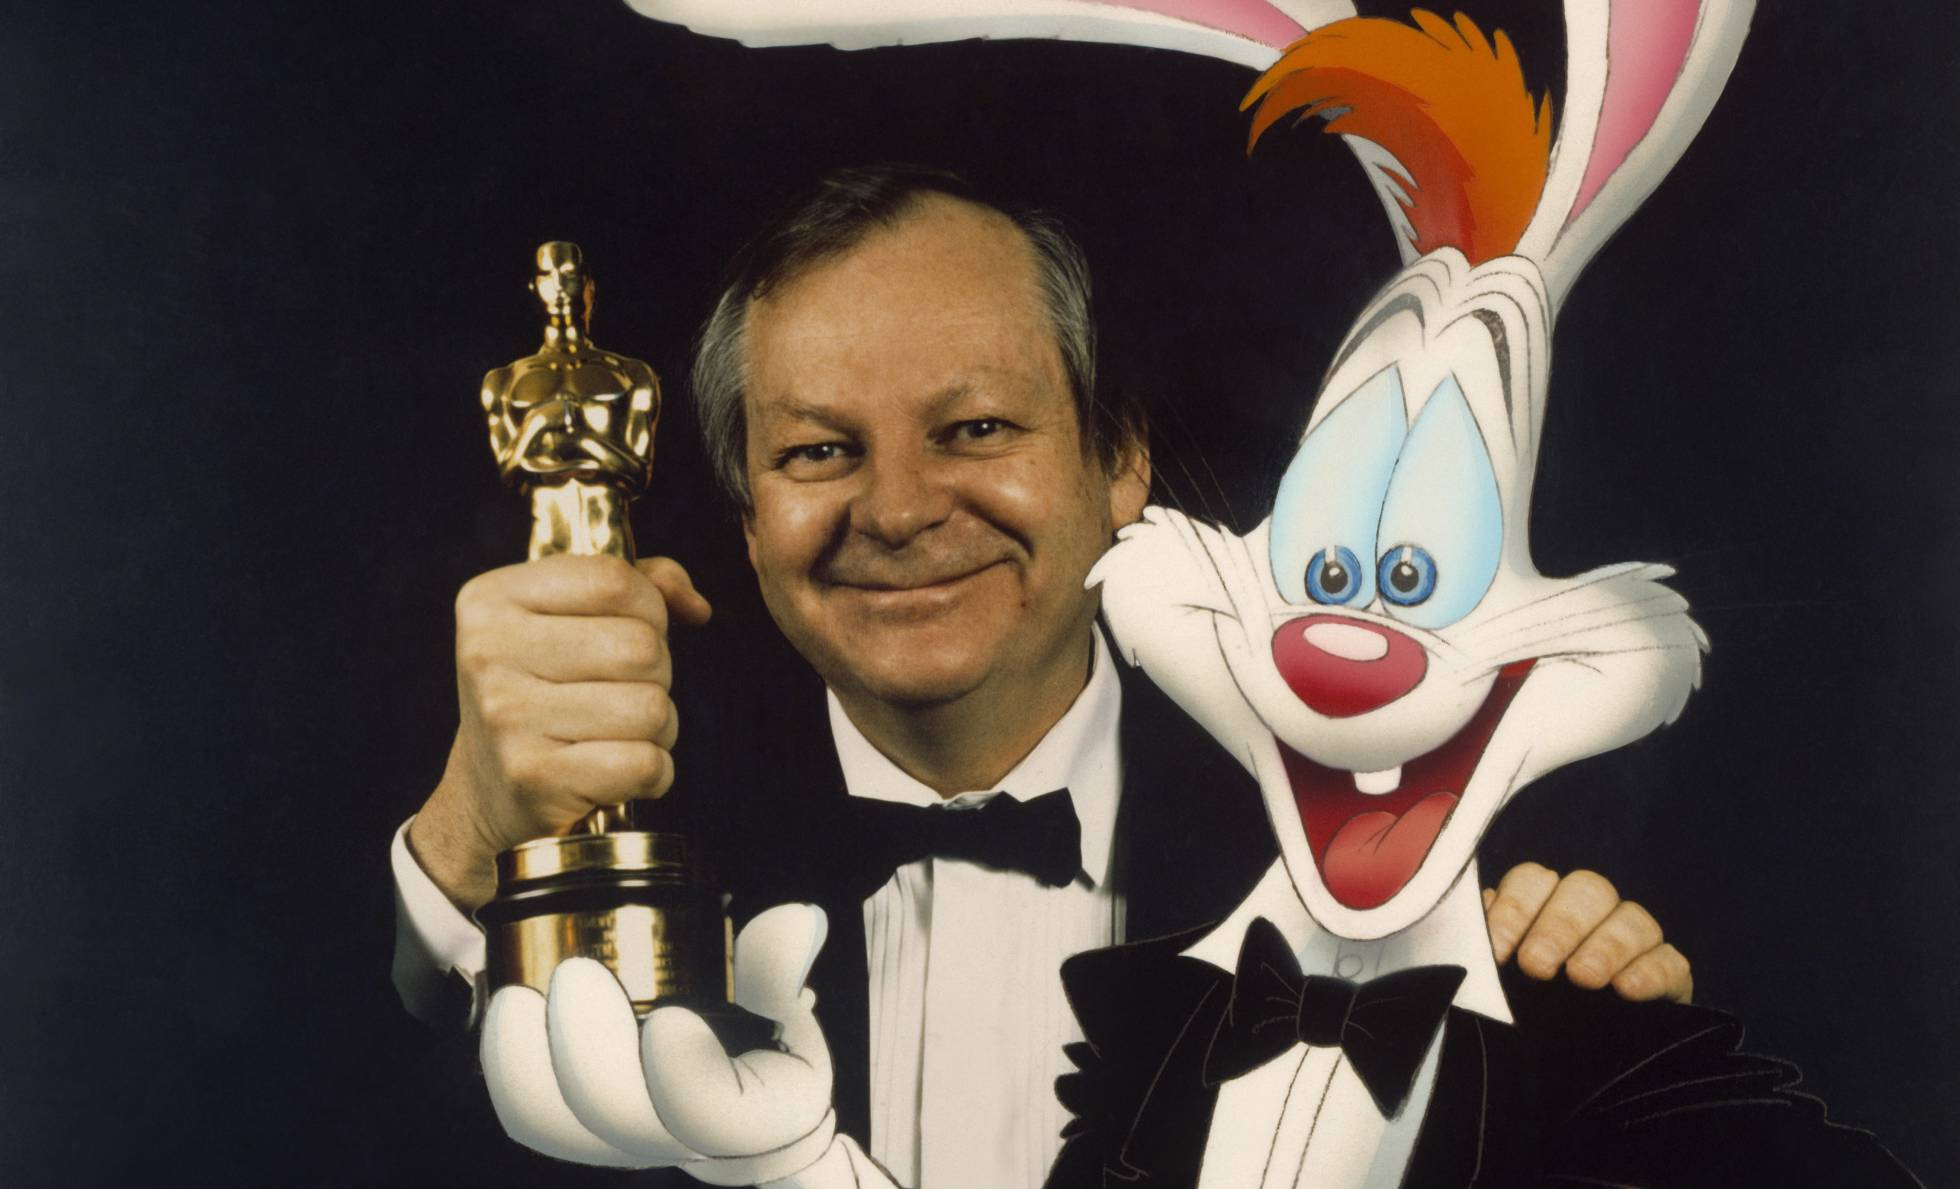 Muere el animador y director Richard Williams, creador de Roger Rabbit, a los 86 años